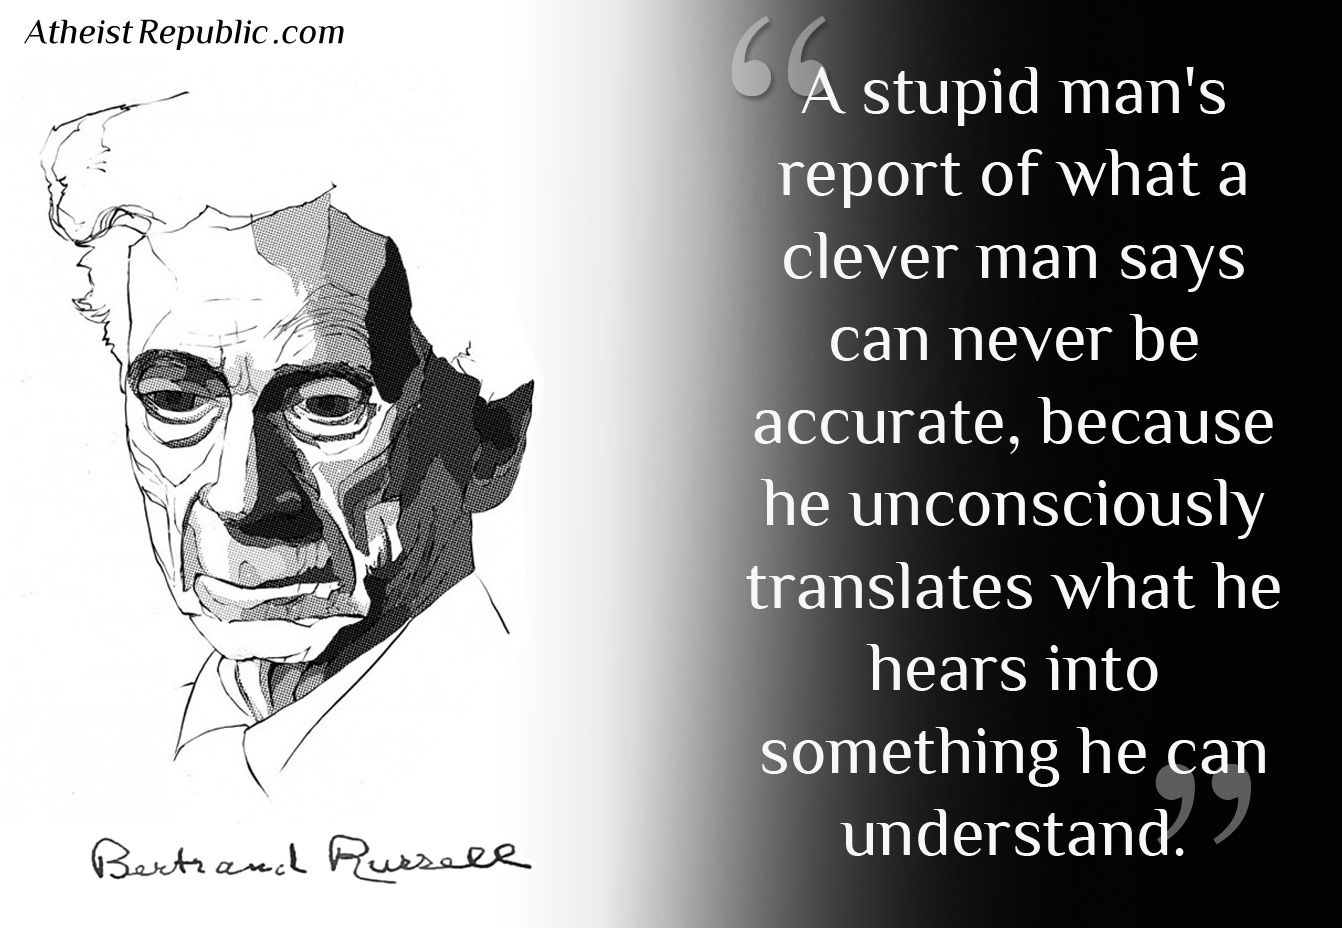 Betty white quotes quotesgram -  Man Says Can Never Be Accurate Because He Unconsciously Translates What He Hears Into Something He Can Understand Bertrand Russell Quote Source The